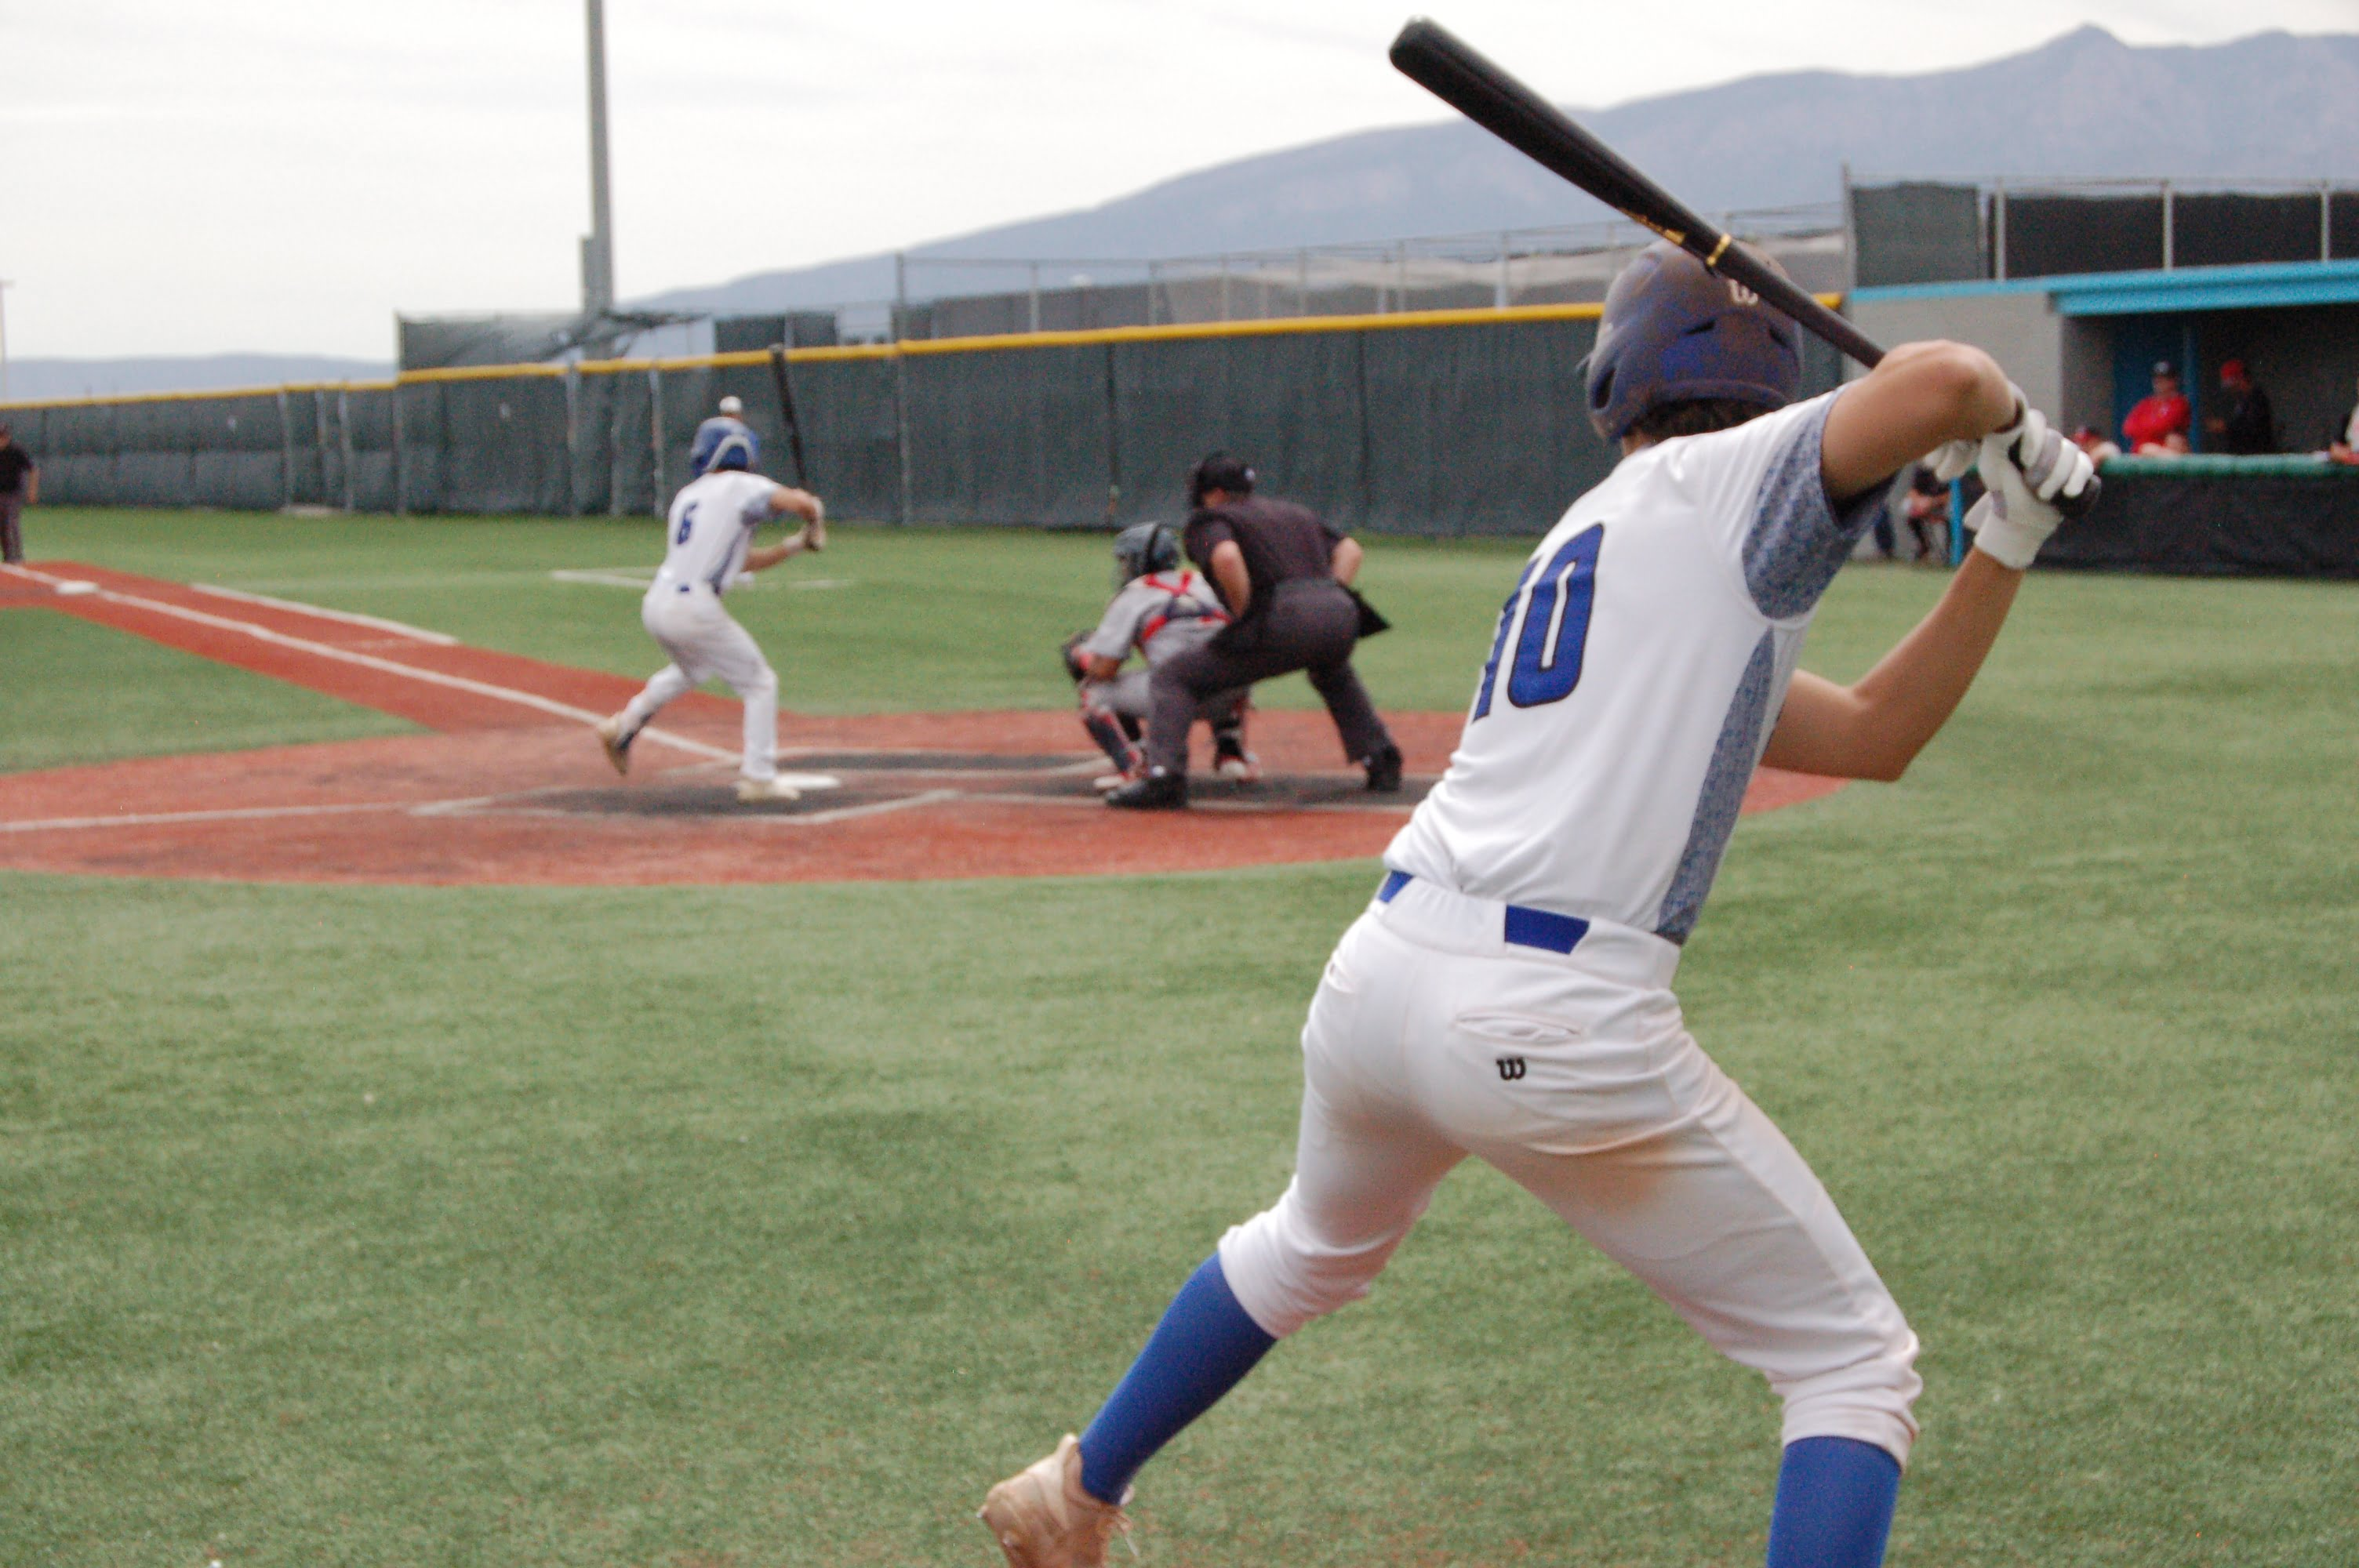 East Mountain Timberwolves eliminated from state tourney by NMMI